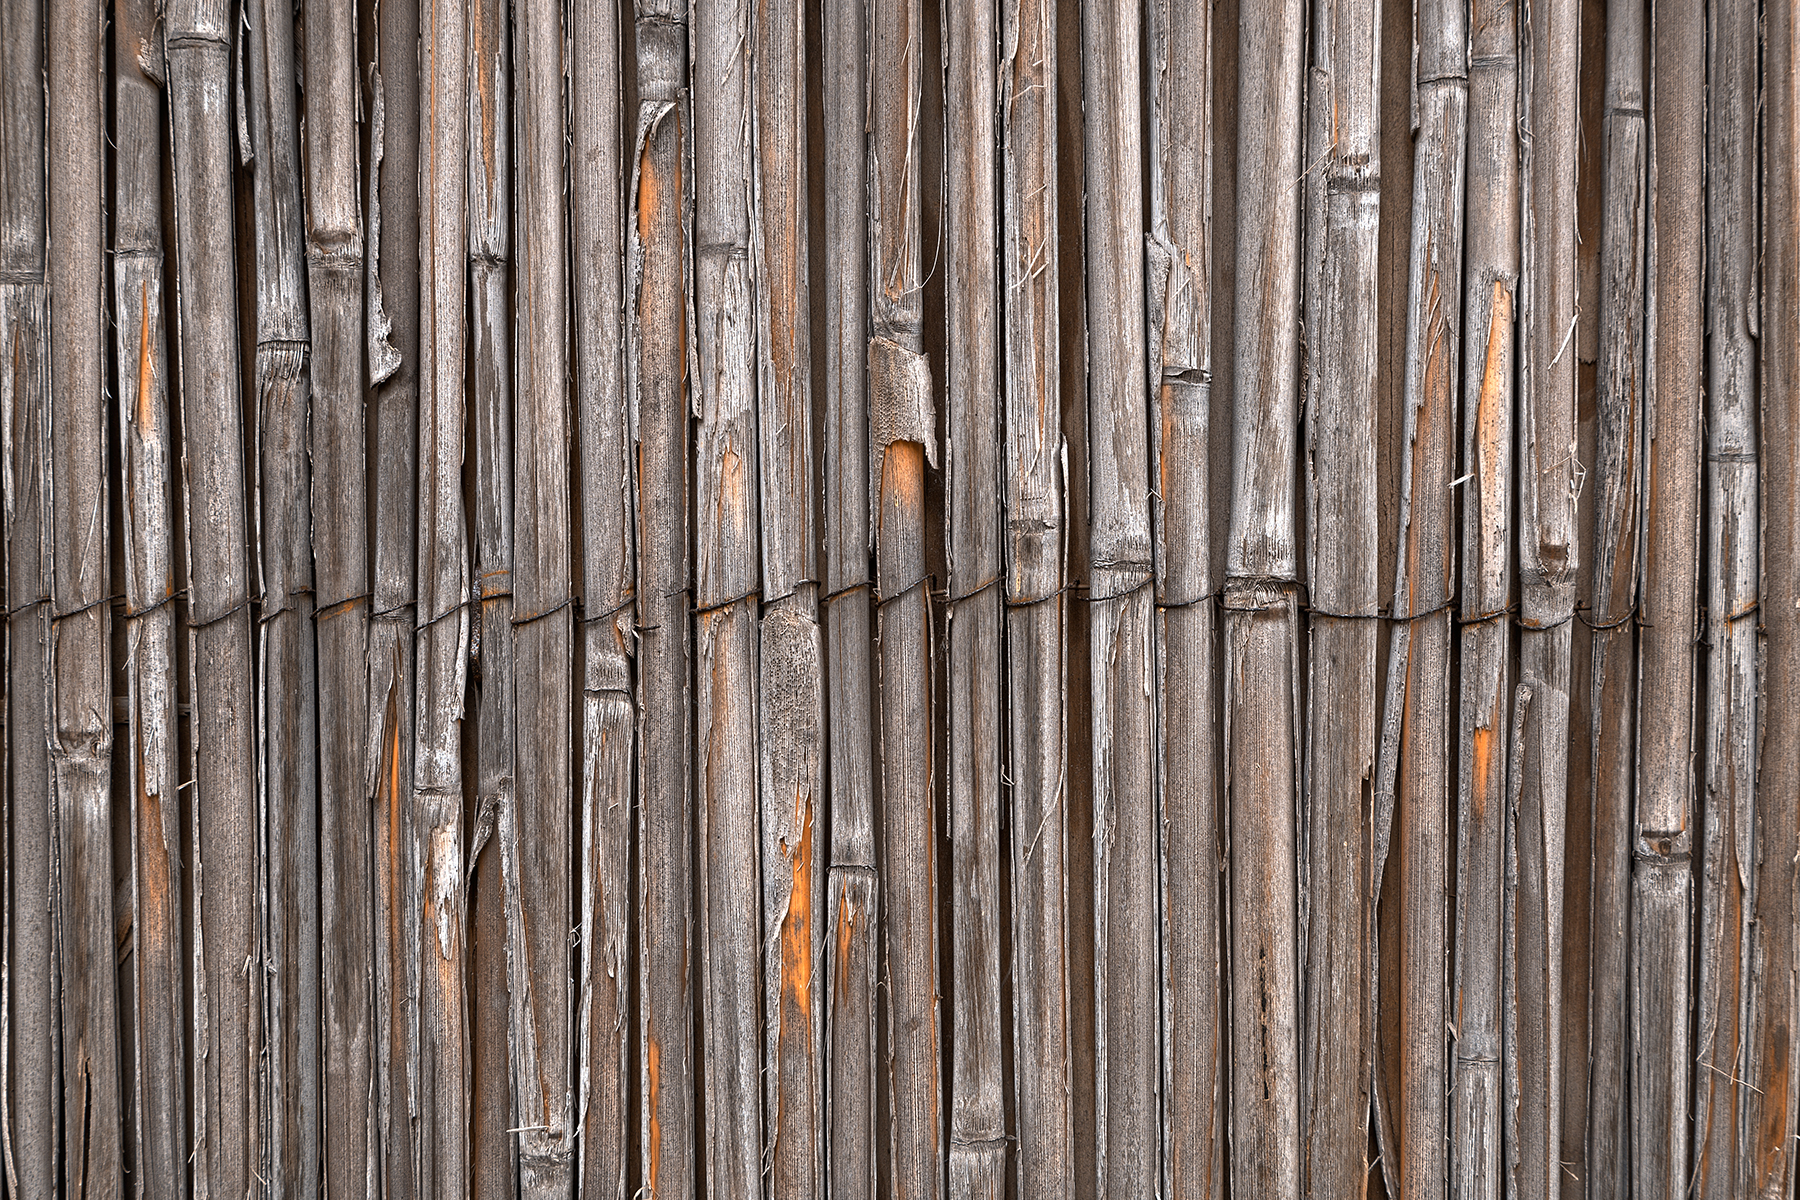 Rustic Bamboo Wall - HDR Texture, Age, Rustic, Stalks, Stalk, HQ Photo